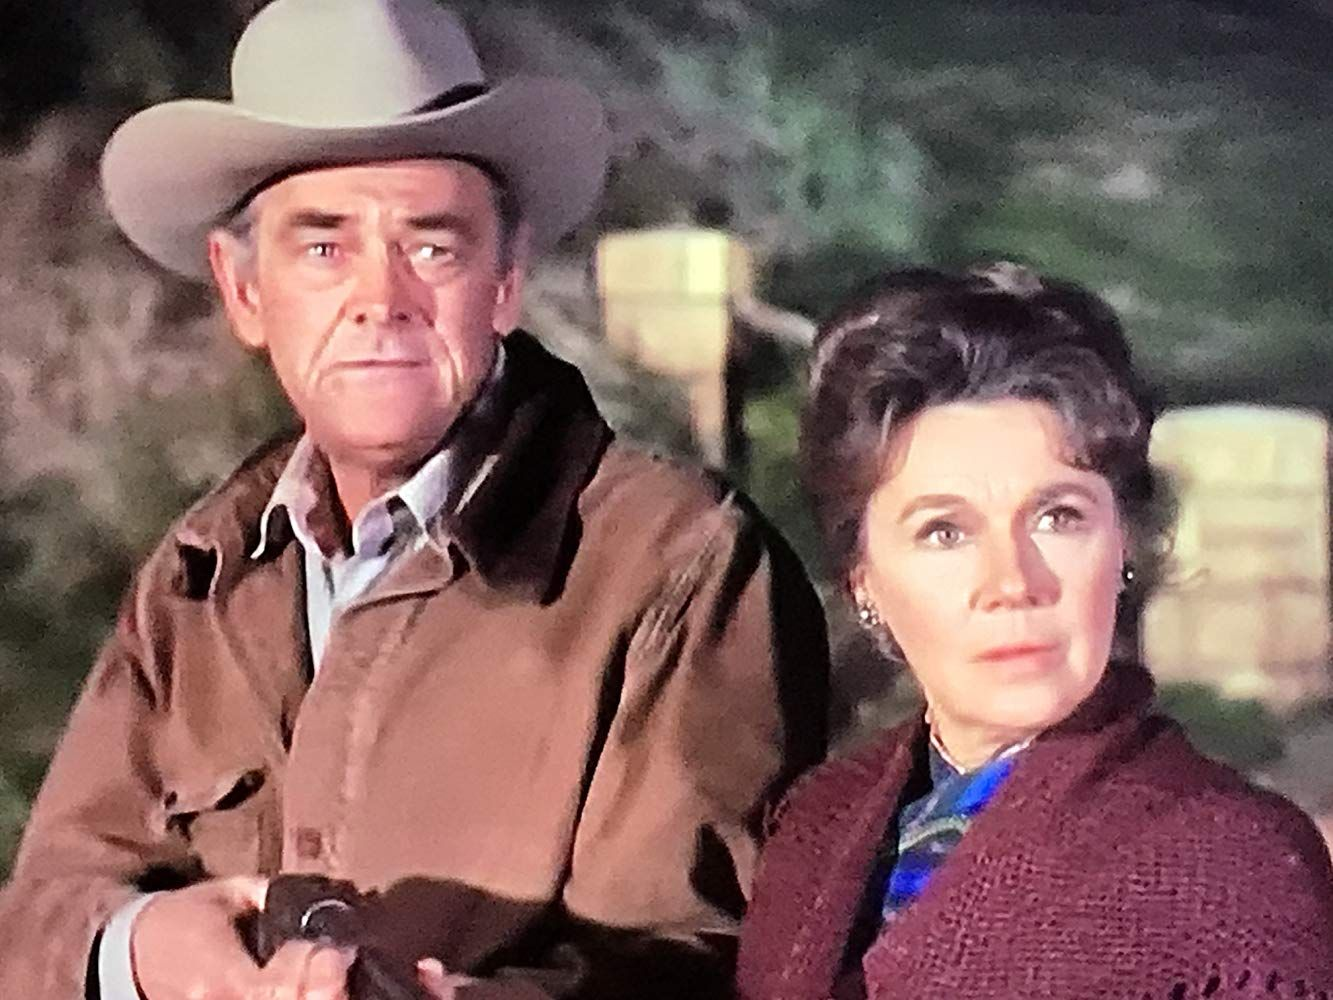 John McIntire and Jeanette Nolan in The Virginian (1962) | The virginian, Jeanette nolan, John mcintire